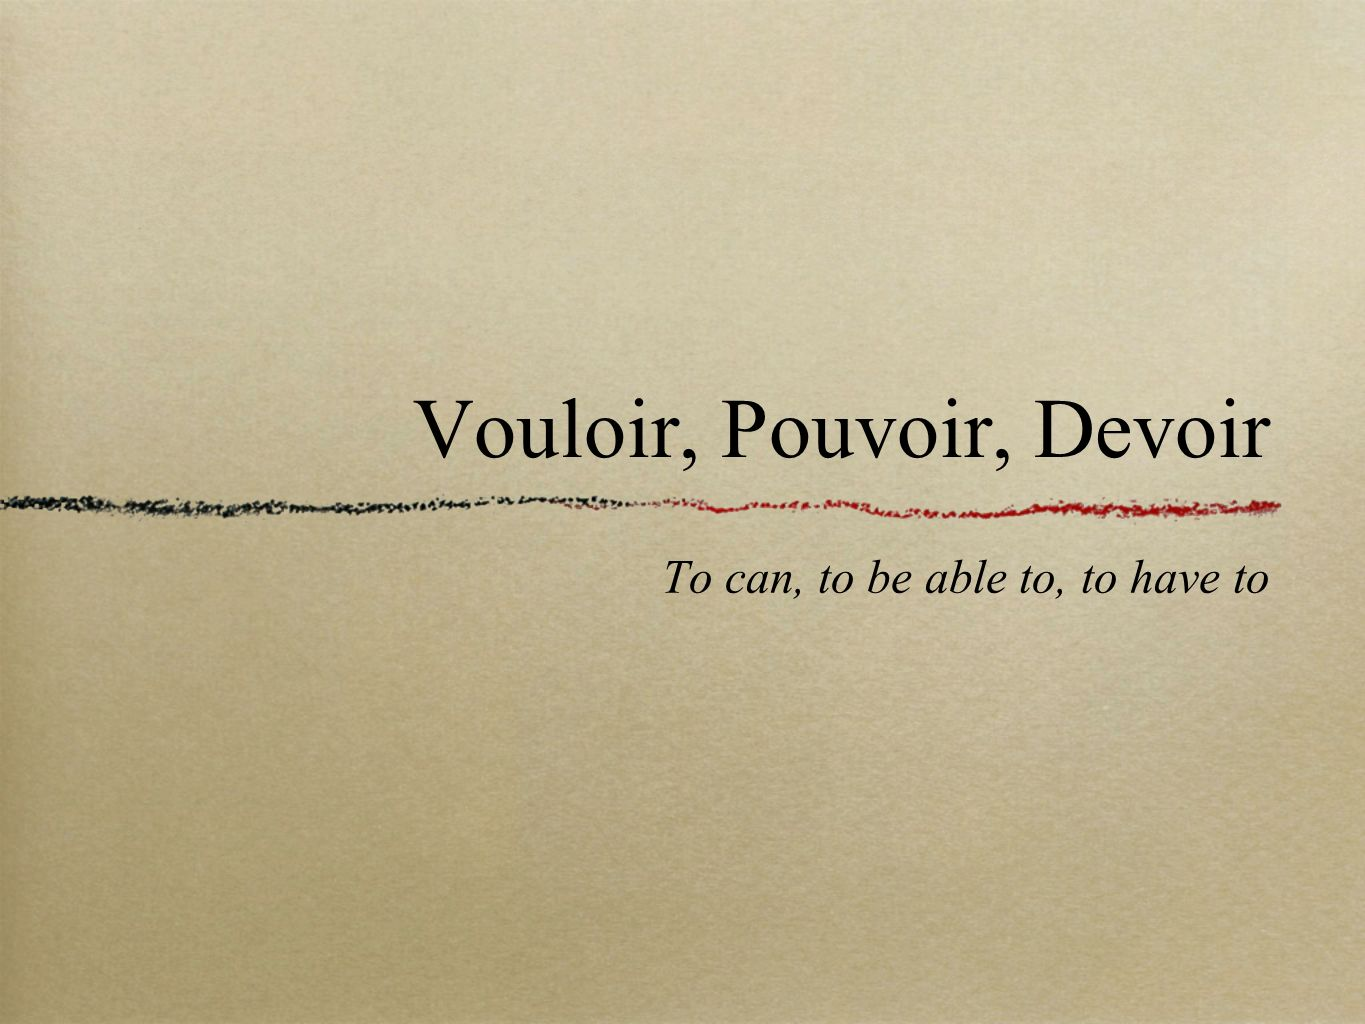 They have to: